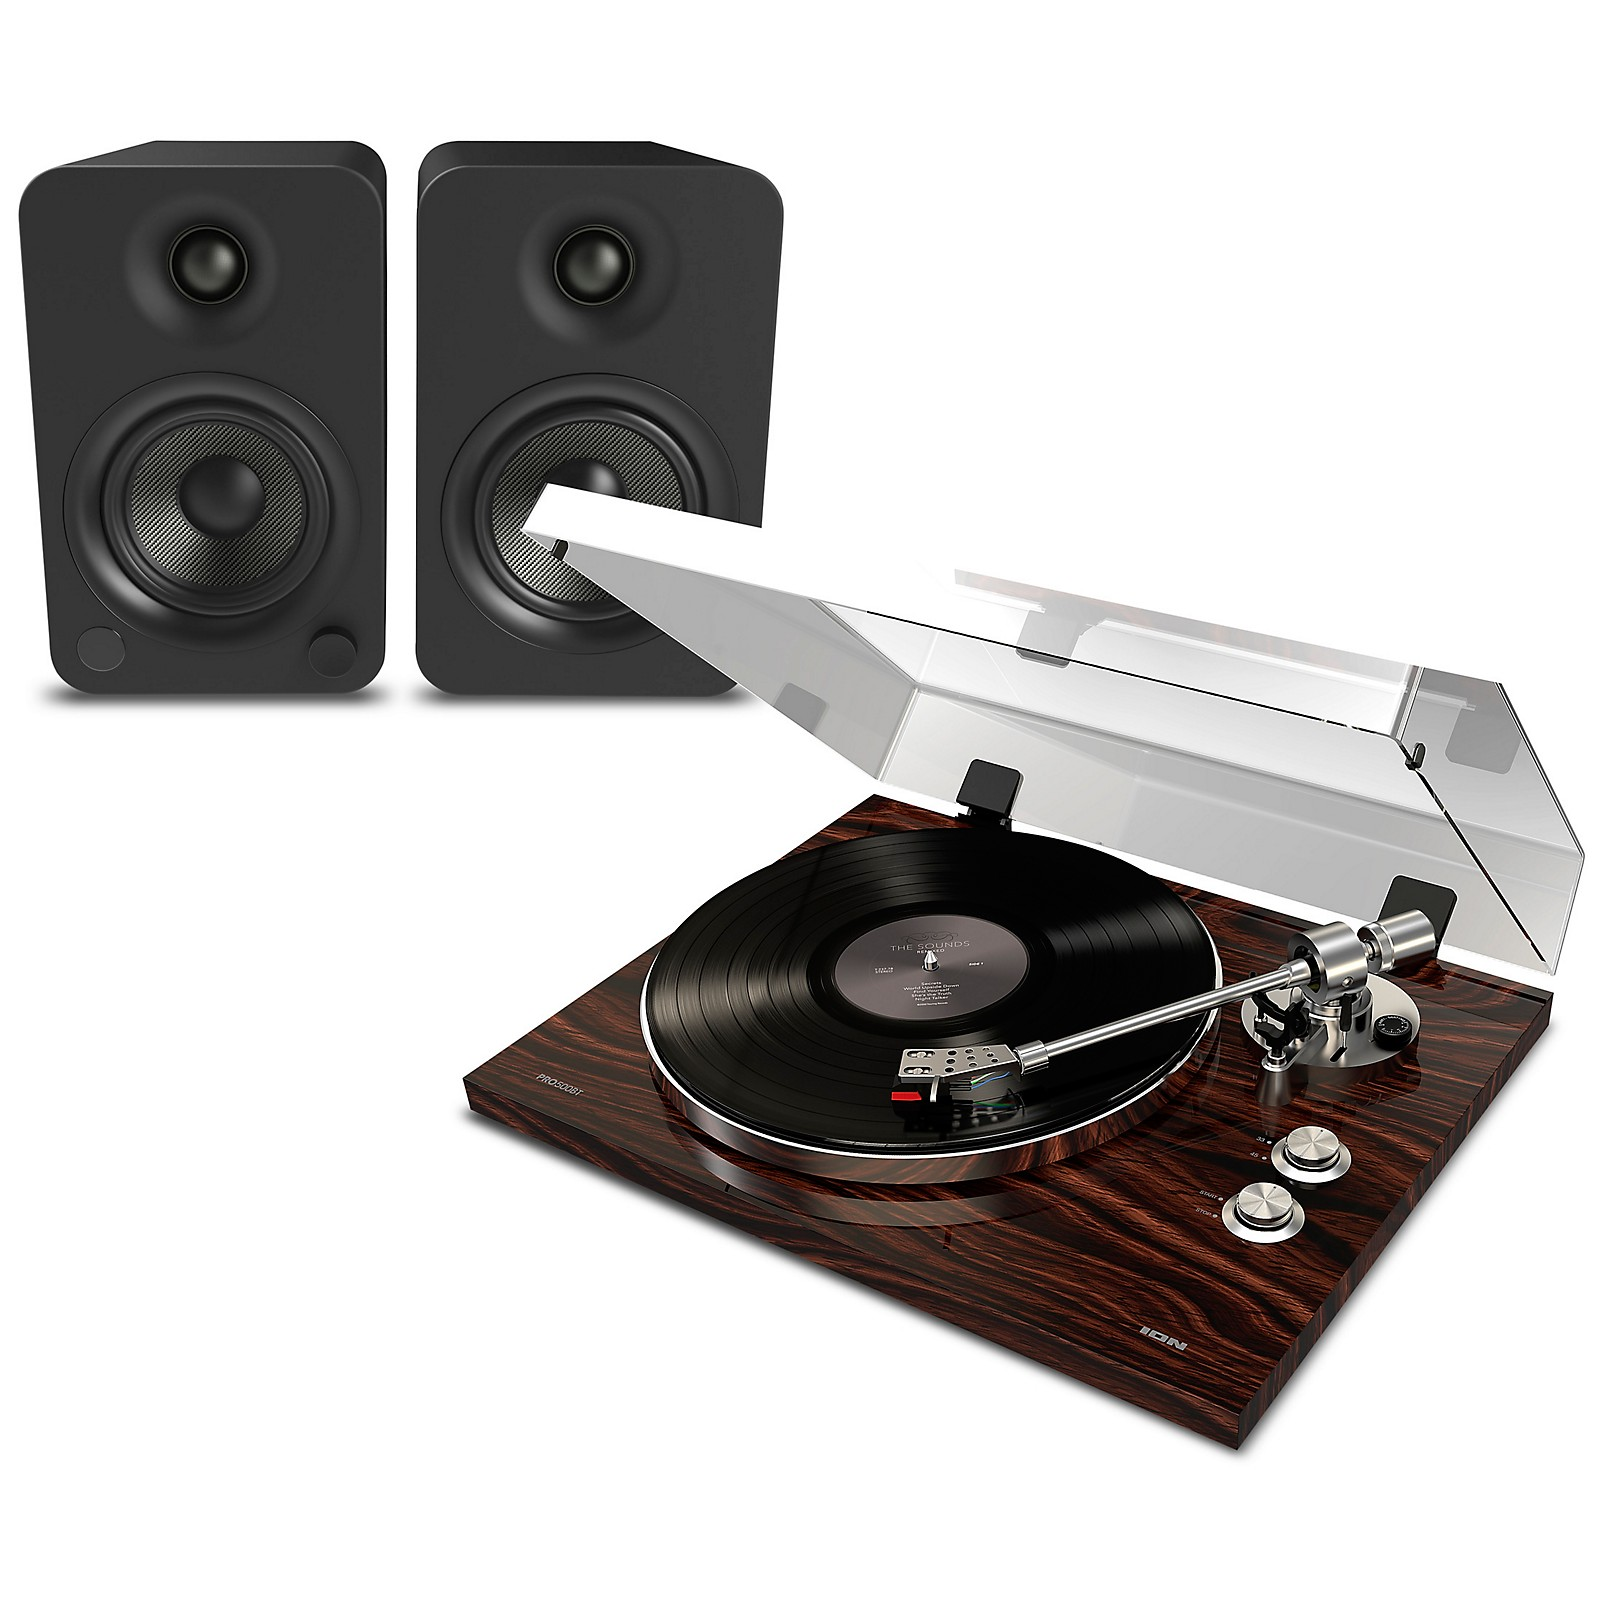 ION Pro BT500 Record Player Package with Kanto YU4 Powered Speakers